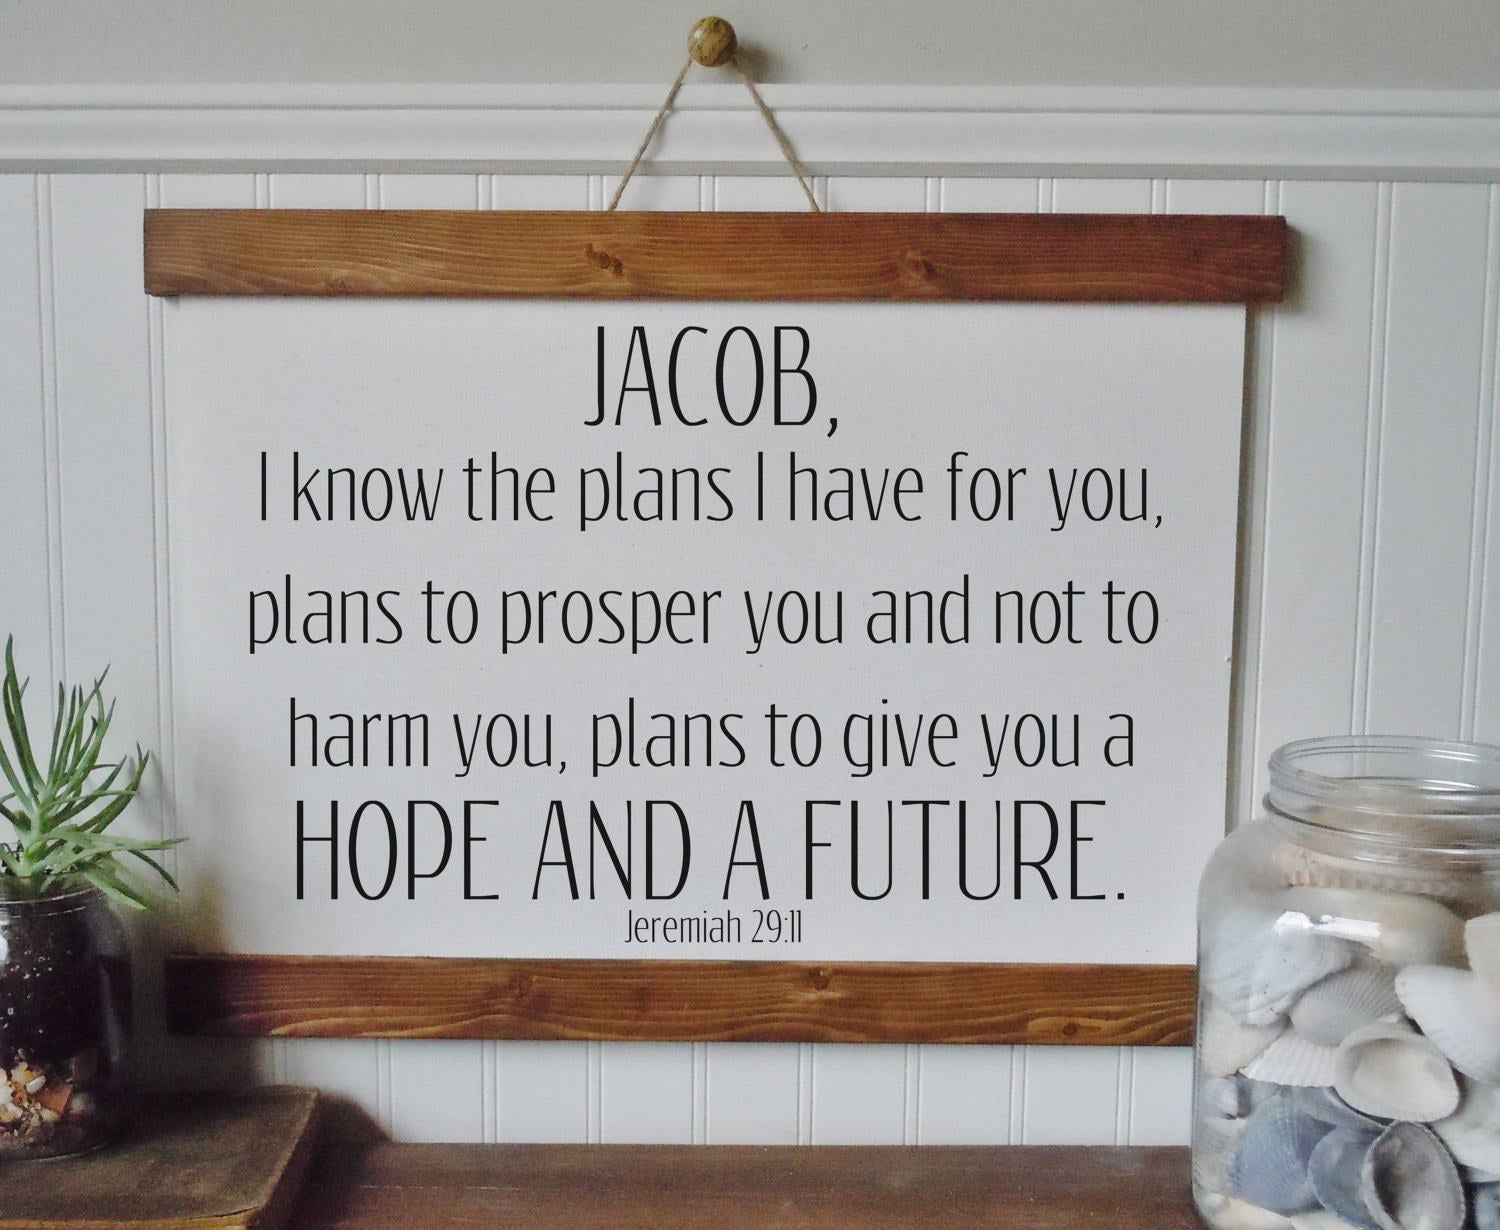 I know the plans I have for you/personalized/Jeremiah 29:11/wall art/canvas print/laurel wreath/canvas wall art/wall decor